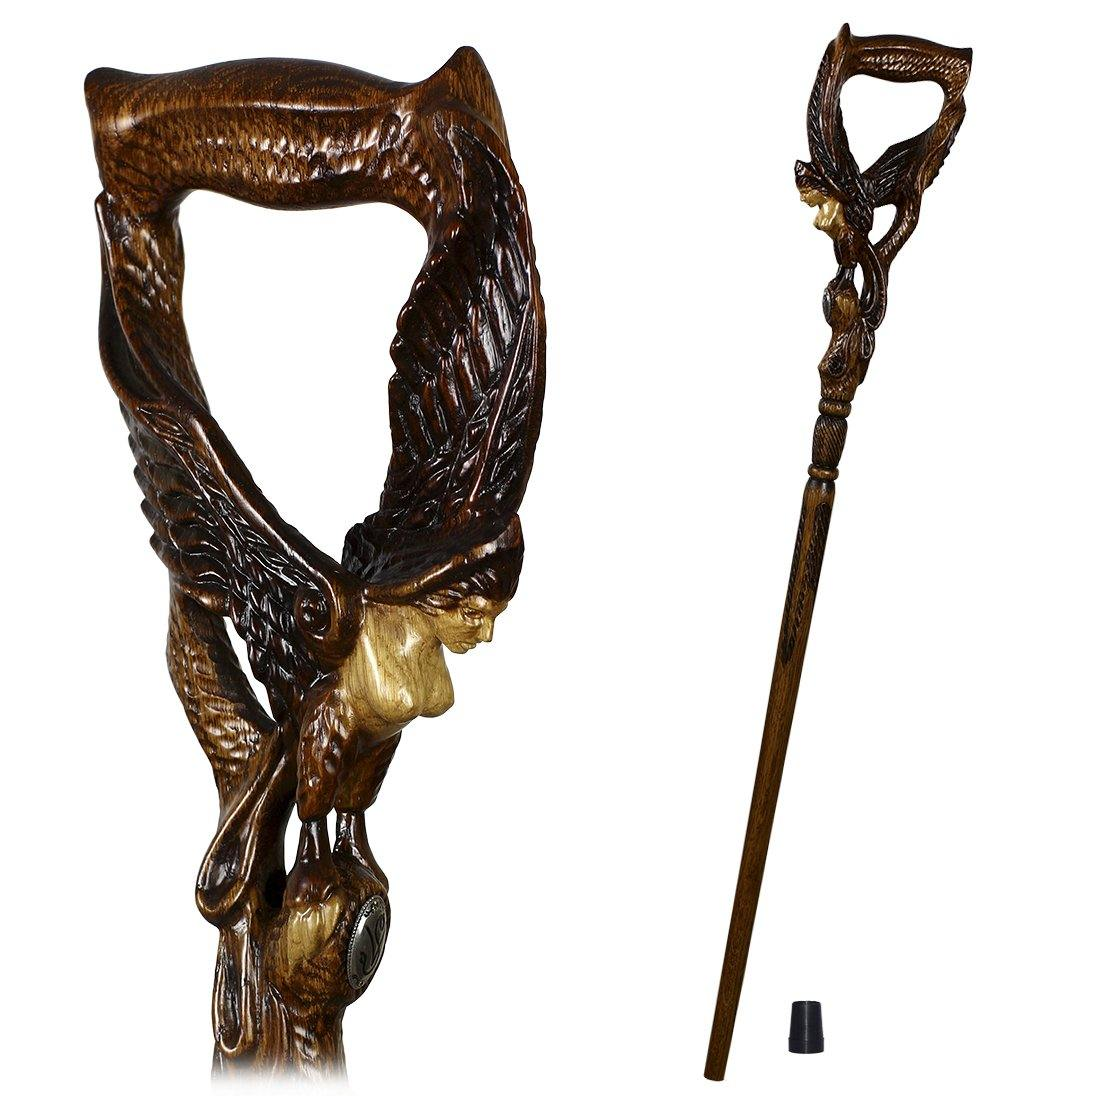 Paradise BIRD GAMAYUN Fantasy Winged Women Cane - GC-Artis Walking Sticks Canes